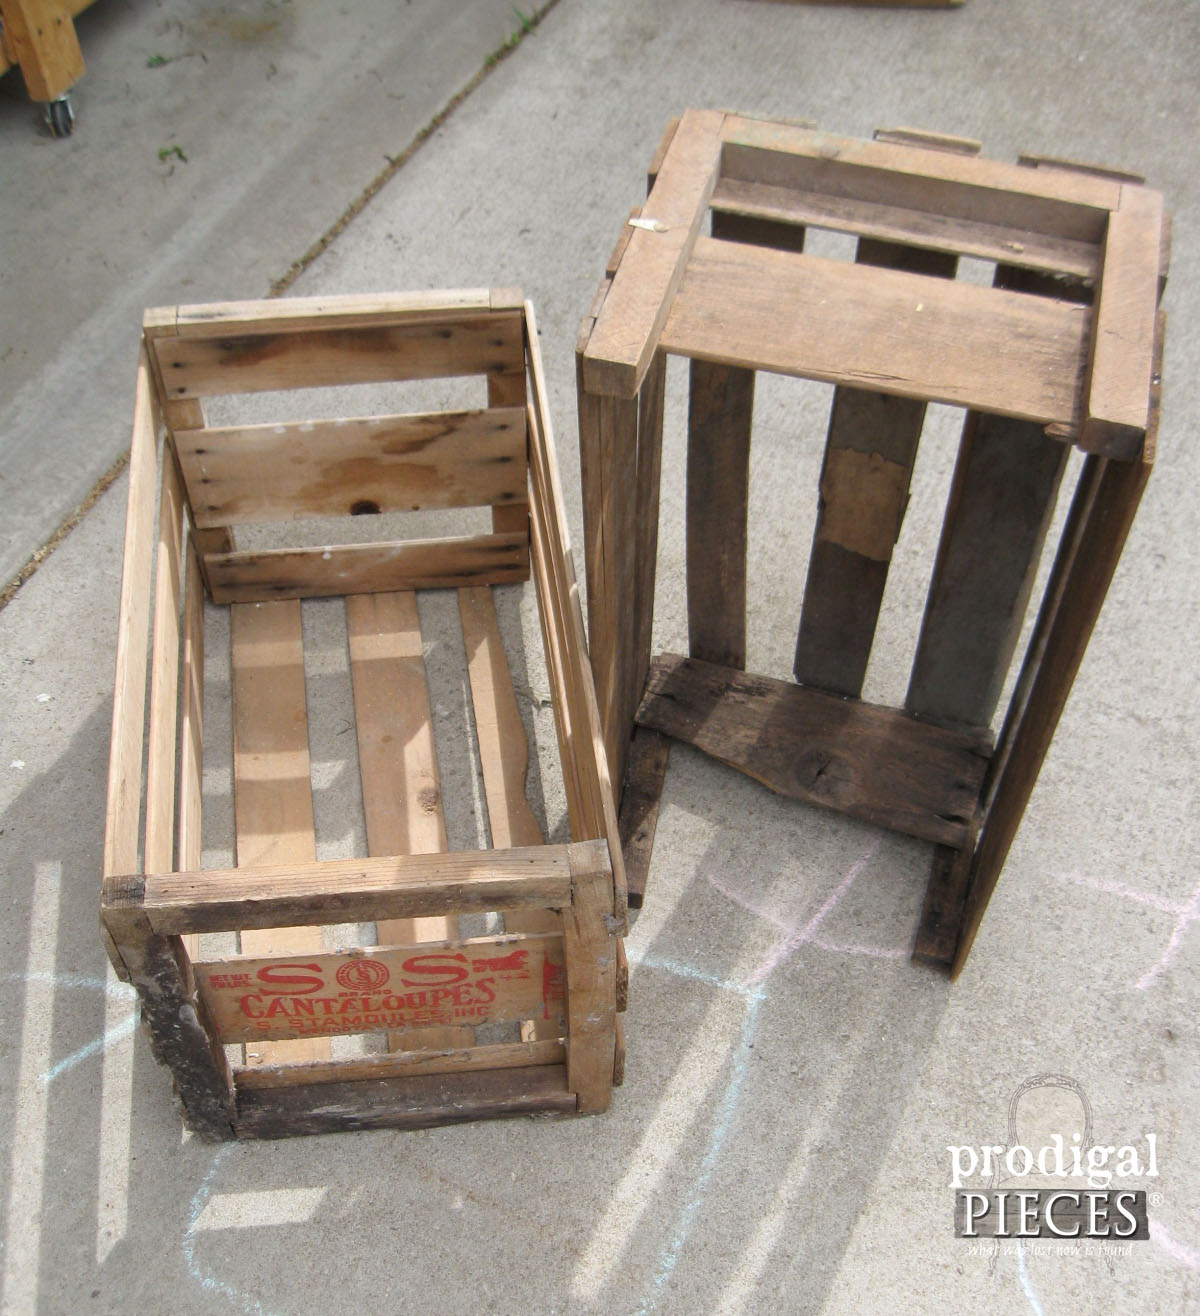 Pair of Old Vintage Farmhouse Crates | Prodigal Pieces | www.prodigalpieces.com